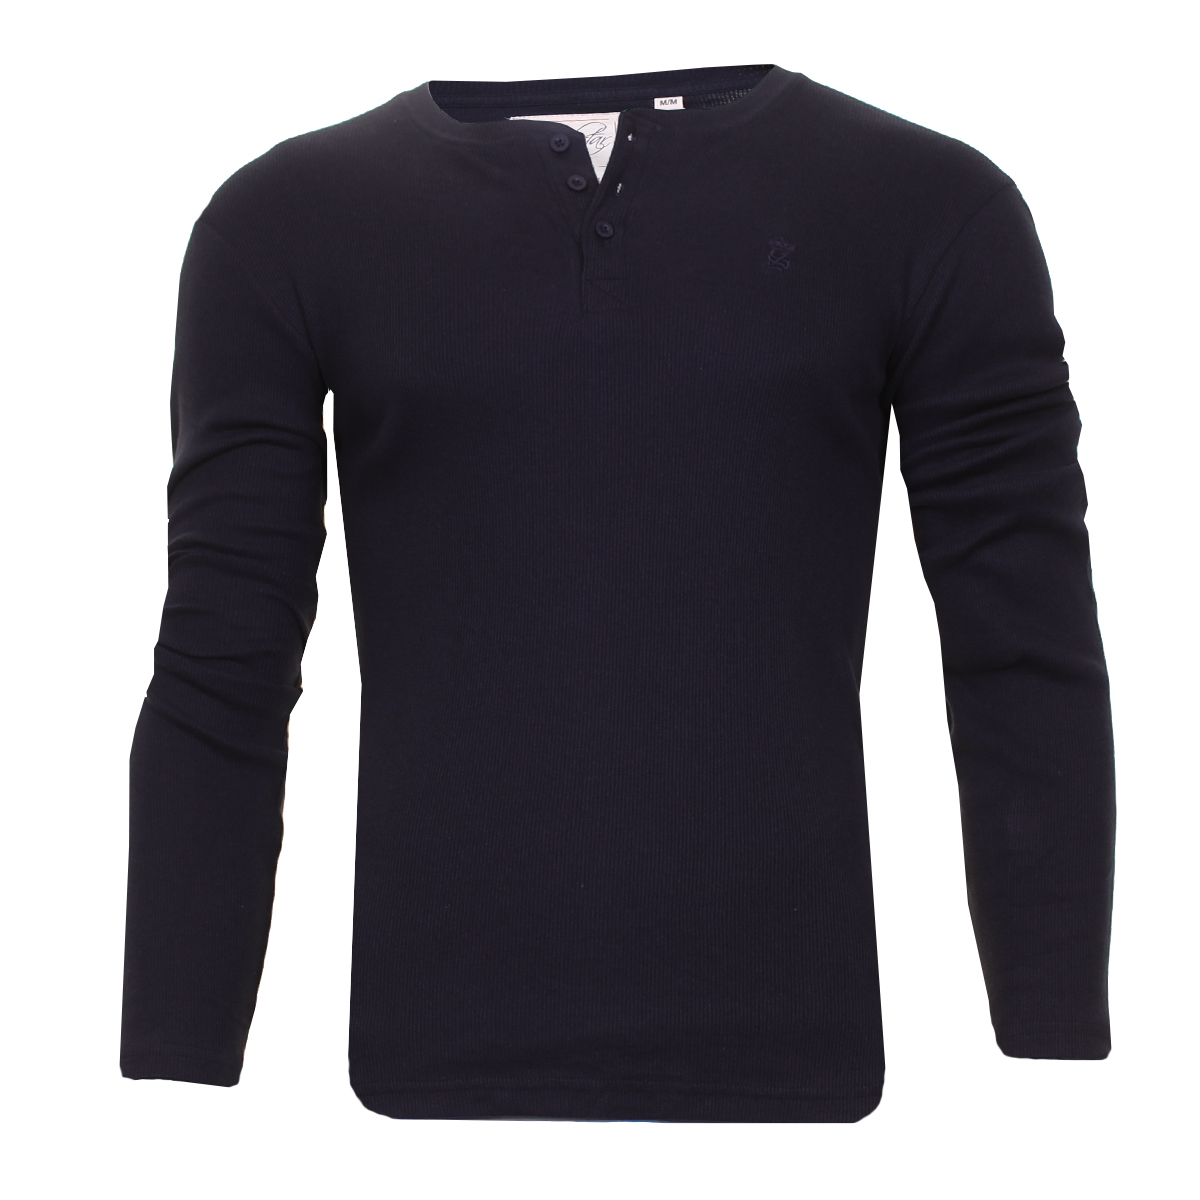 Men-Grandad-T-Shirt-Long-Sleeve-Jersey-Ribbed-Top-Cotton-Rich-Brave-Soul thumbnail 23